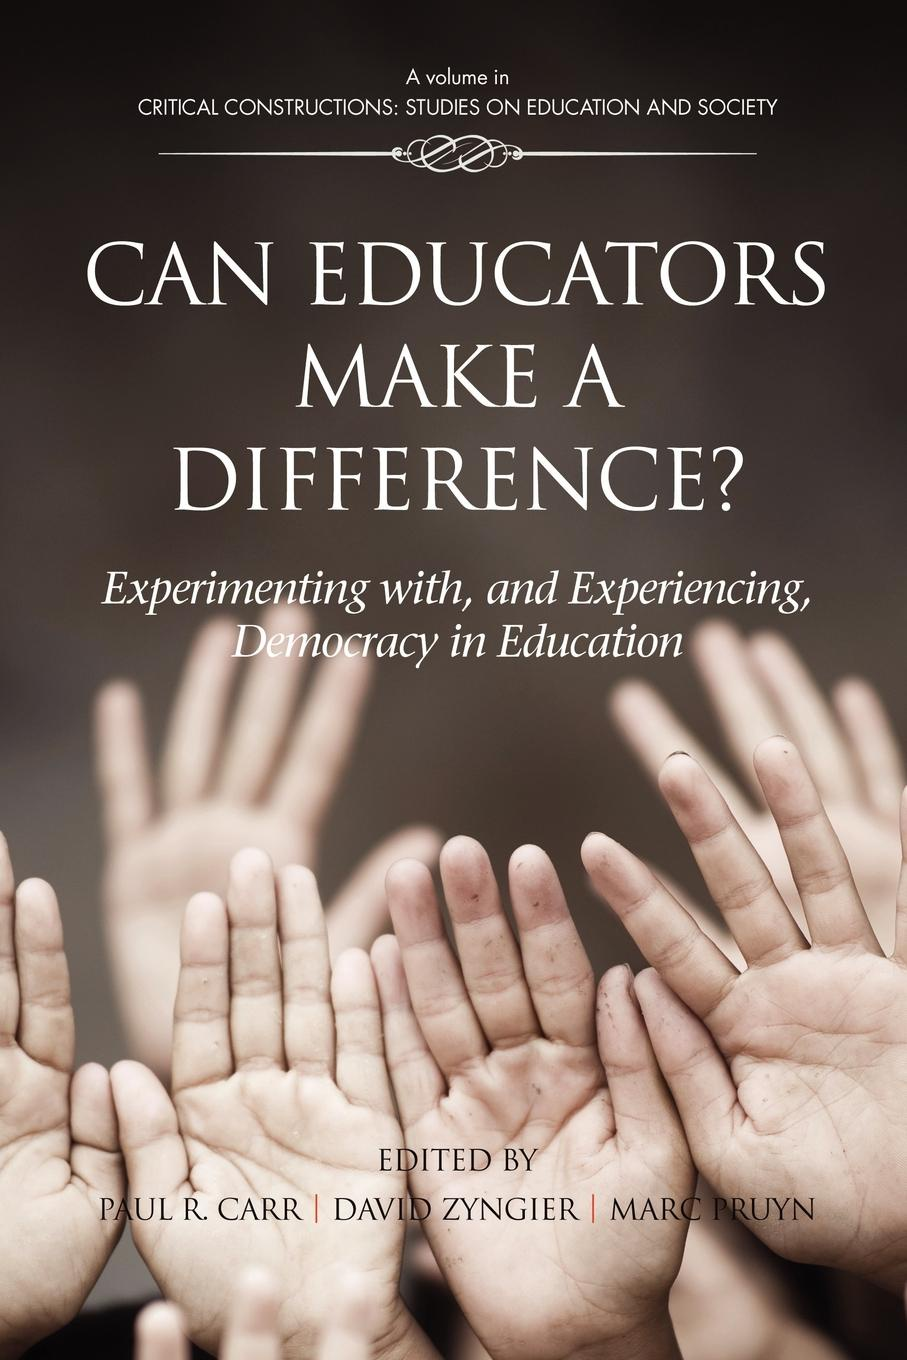 Can Educators Make a Difference. Experimenting with and Experiencing, Democracy in Education